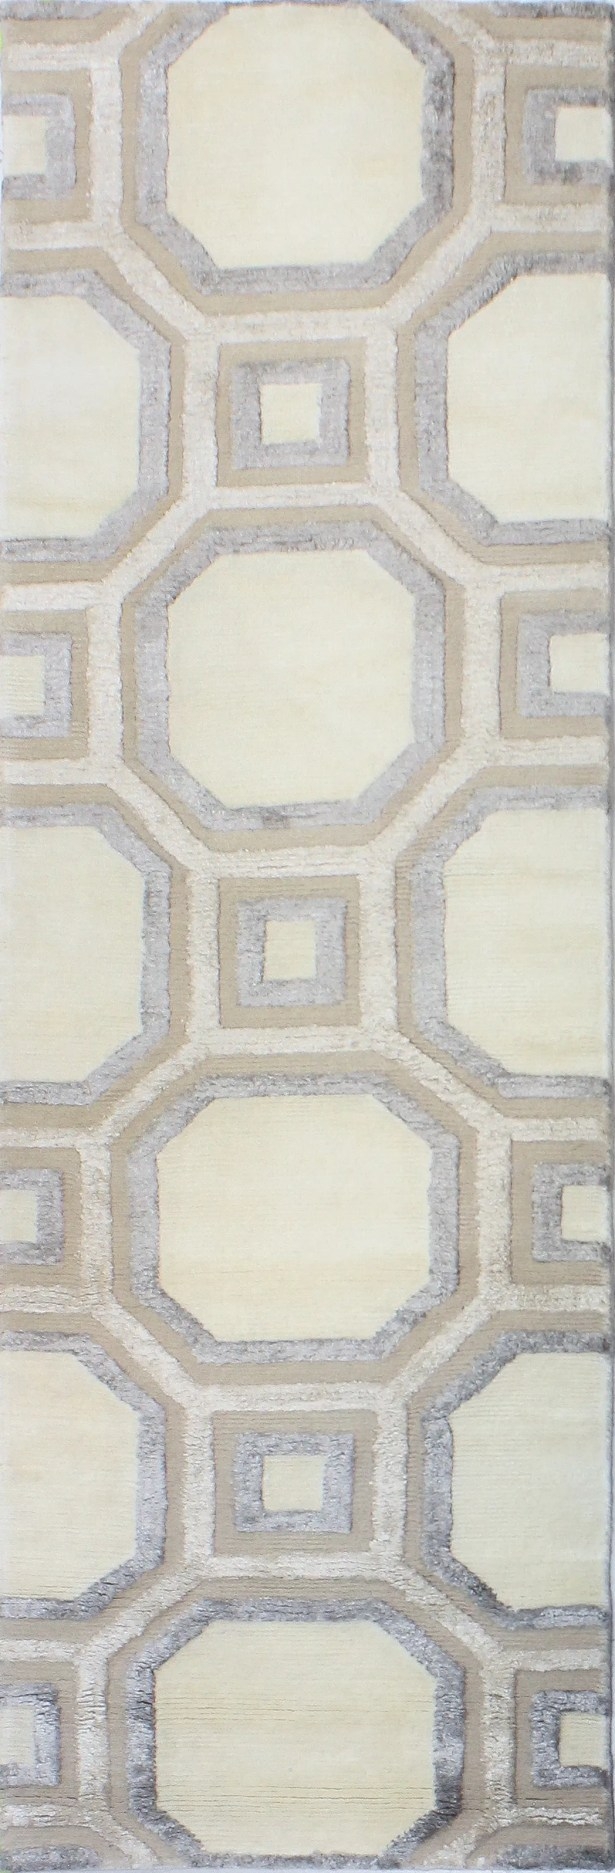 Giles Hand-Tufted Ivory Area Rug Rug Size: Runner 2'6